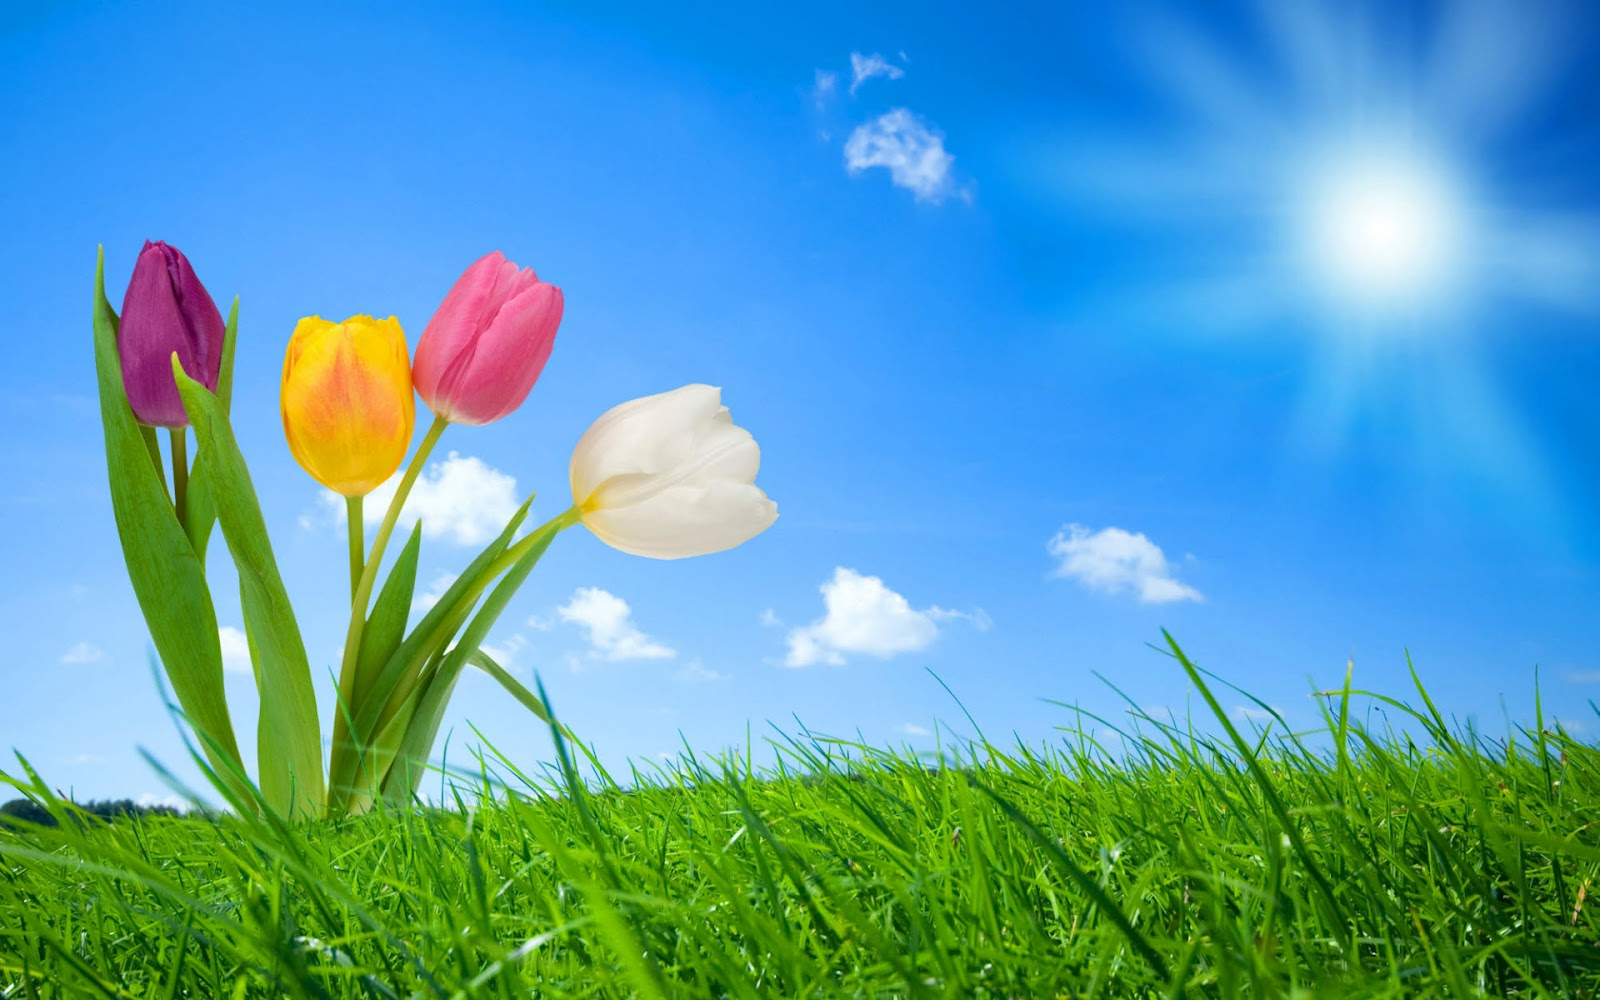 HD WALLPAPERS: SPRING IMAGES